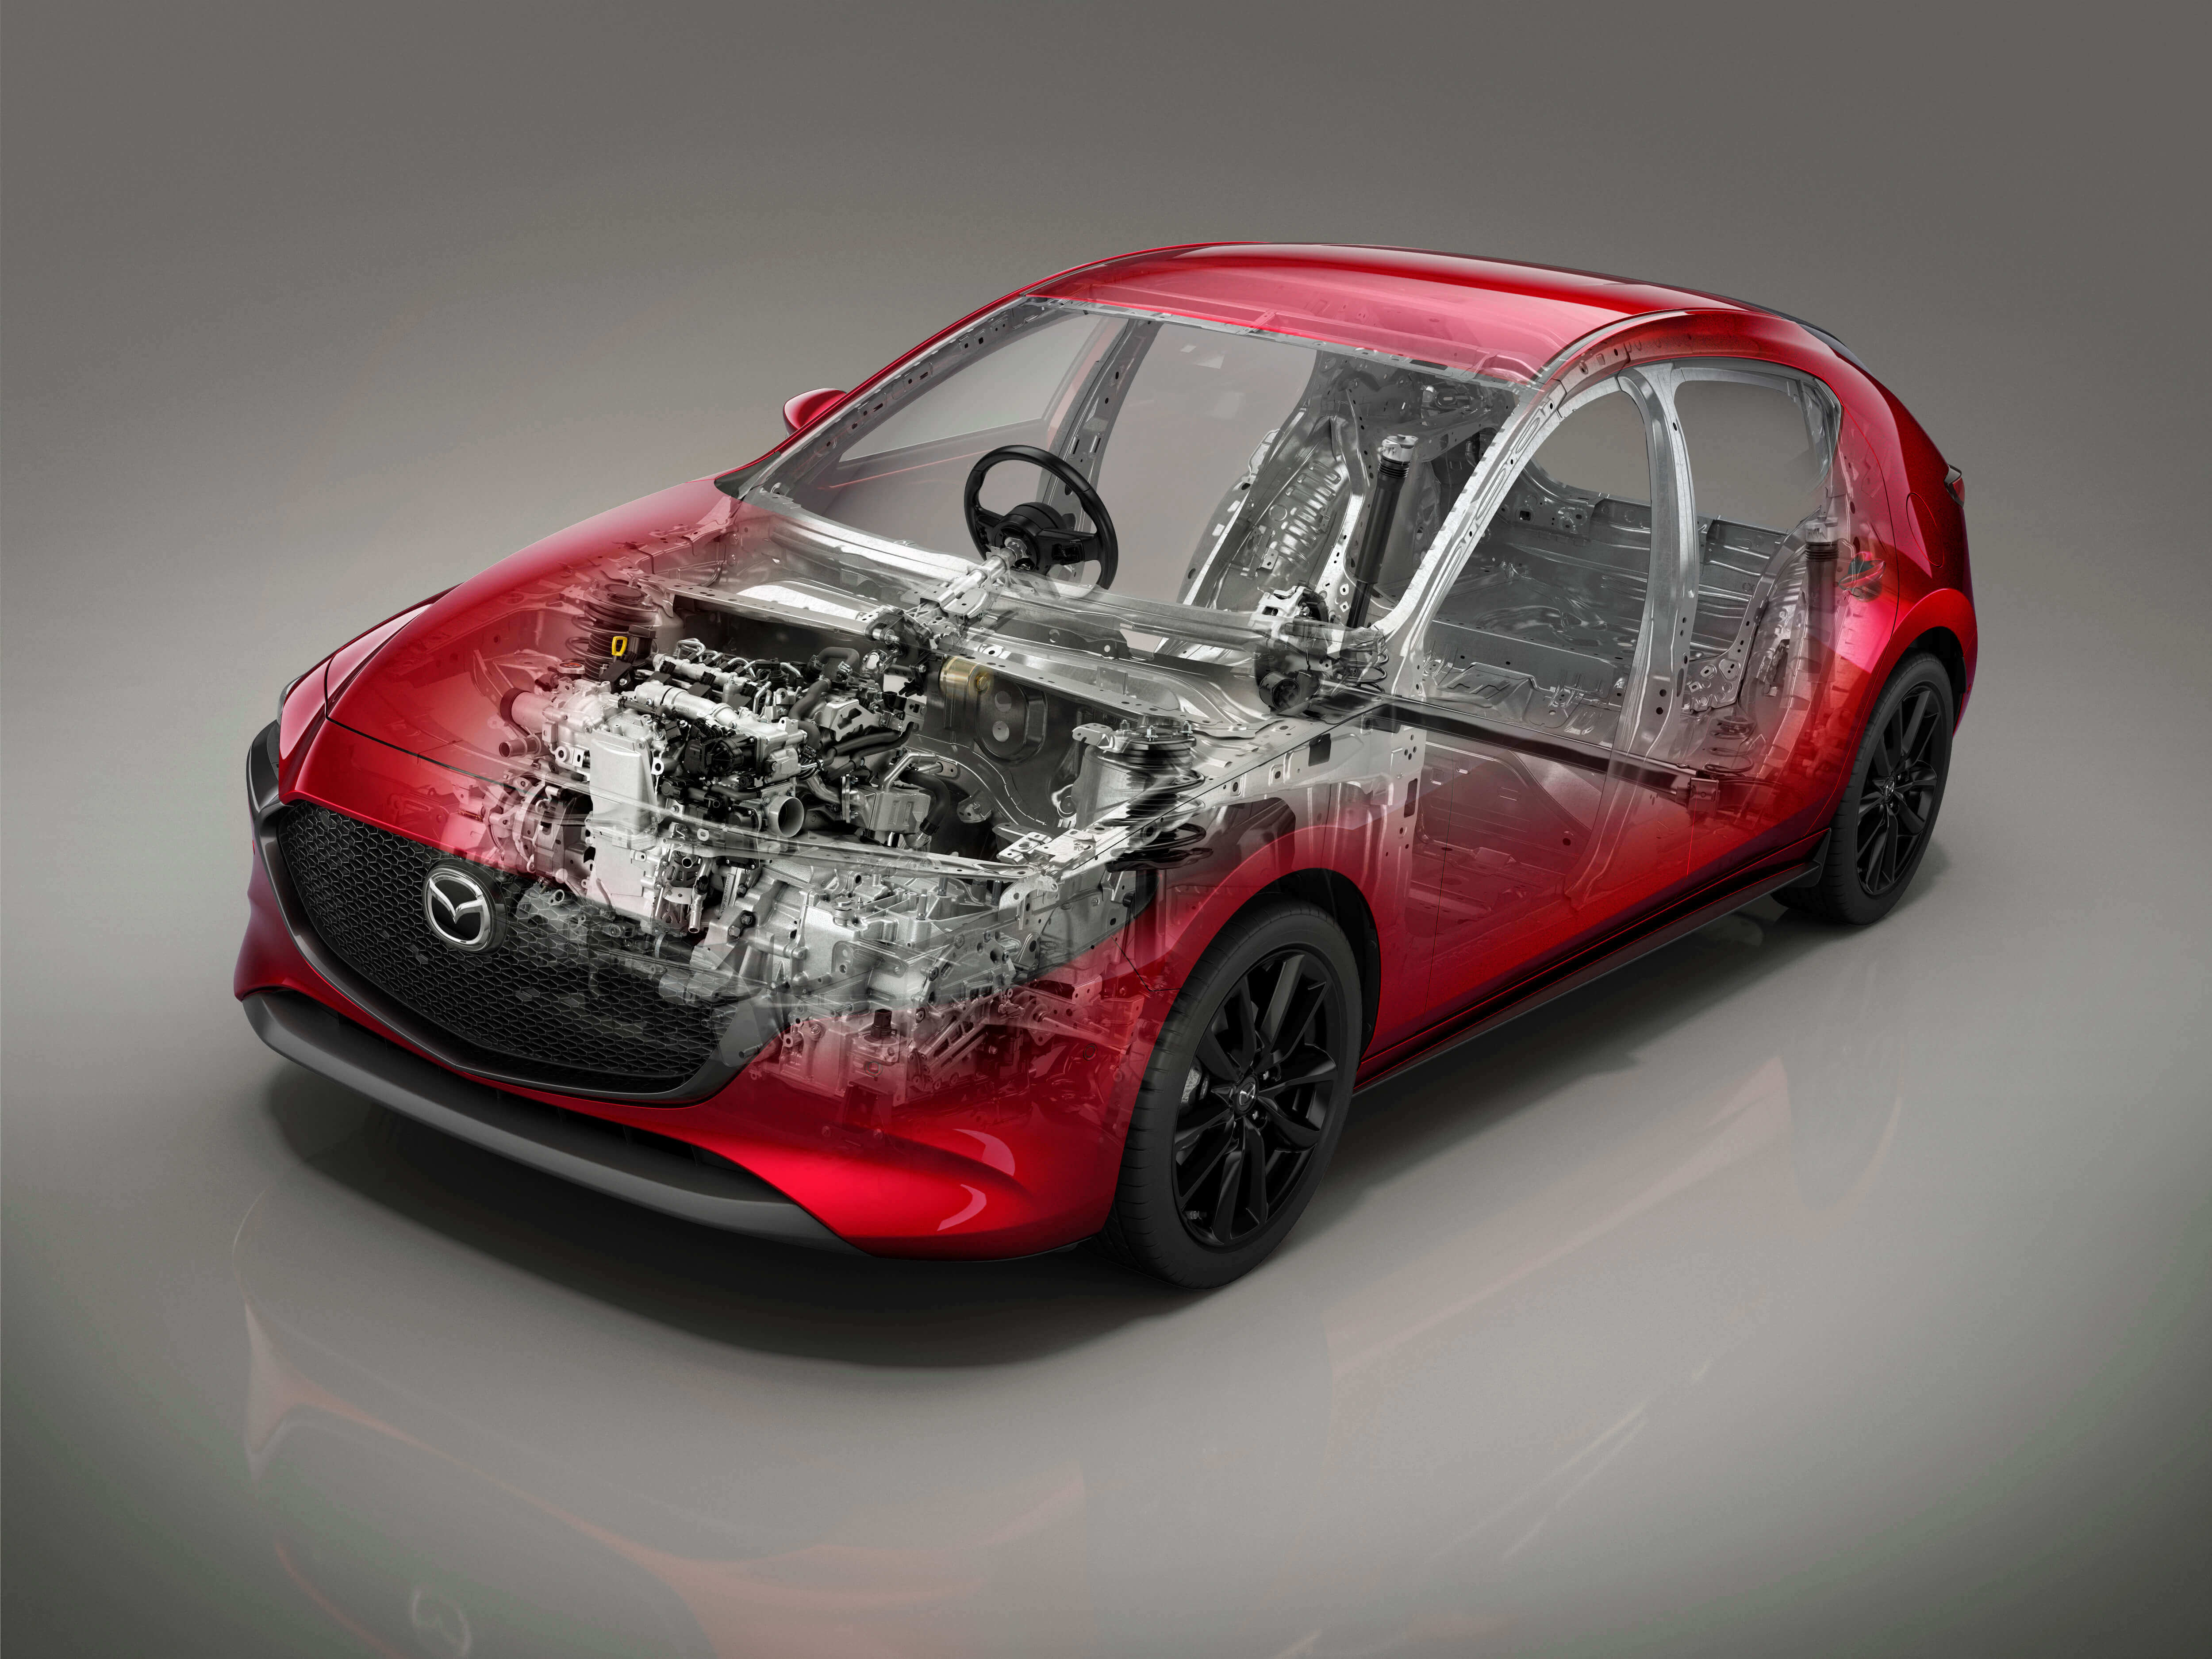 2018 Mazda3 See Through SKYACTIV X HB RHD AT (1) (1)